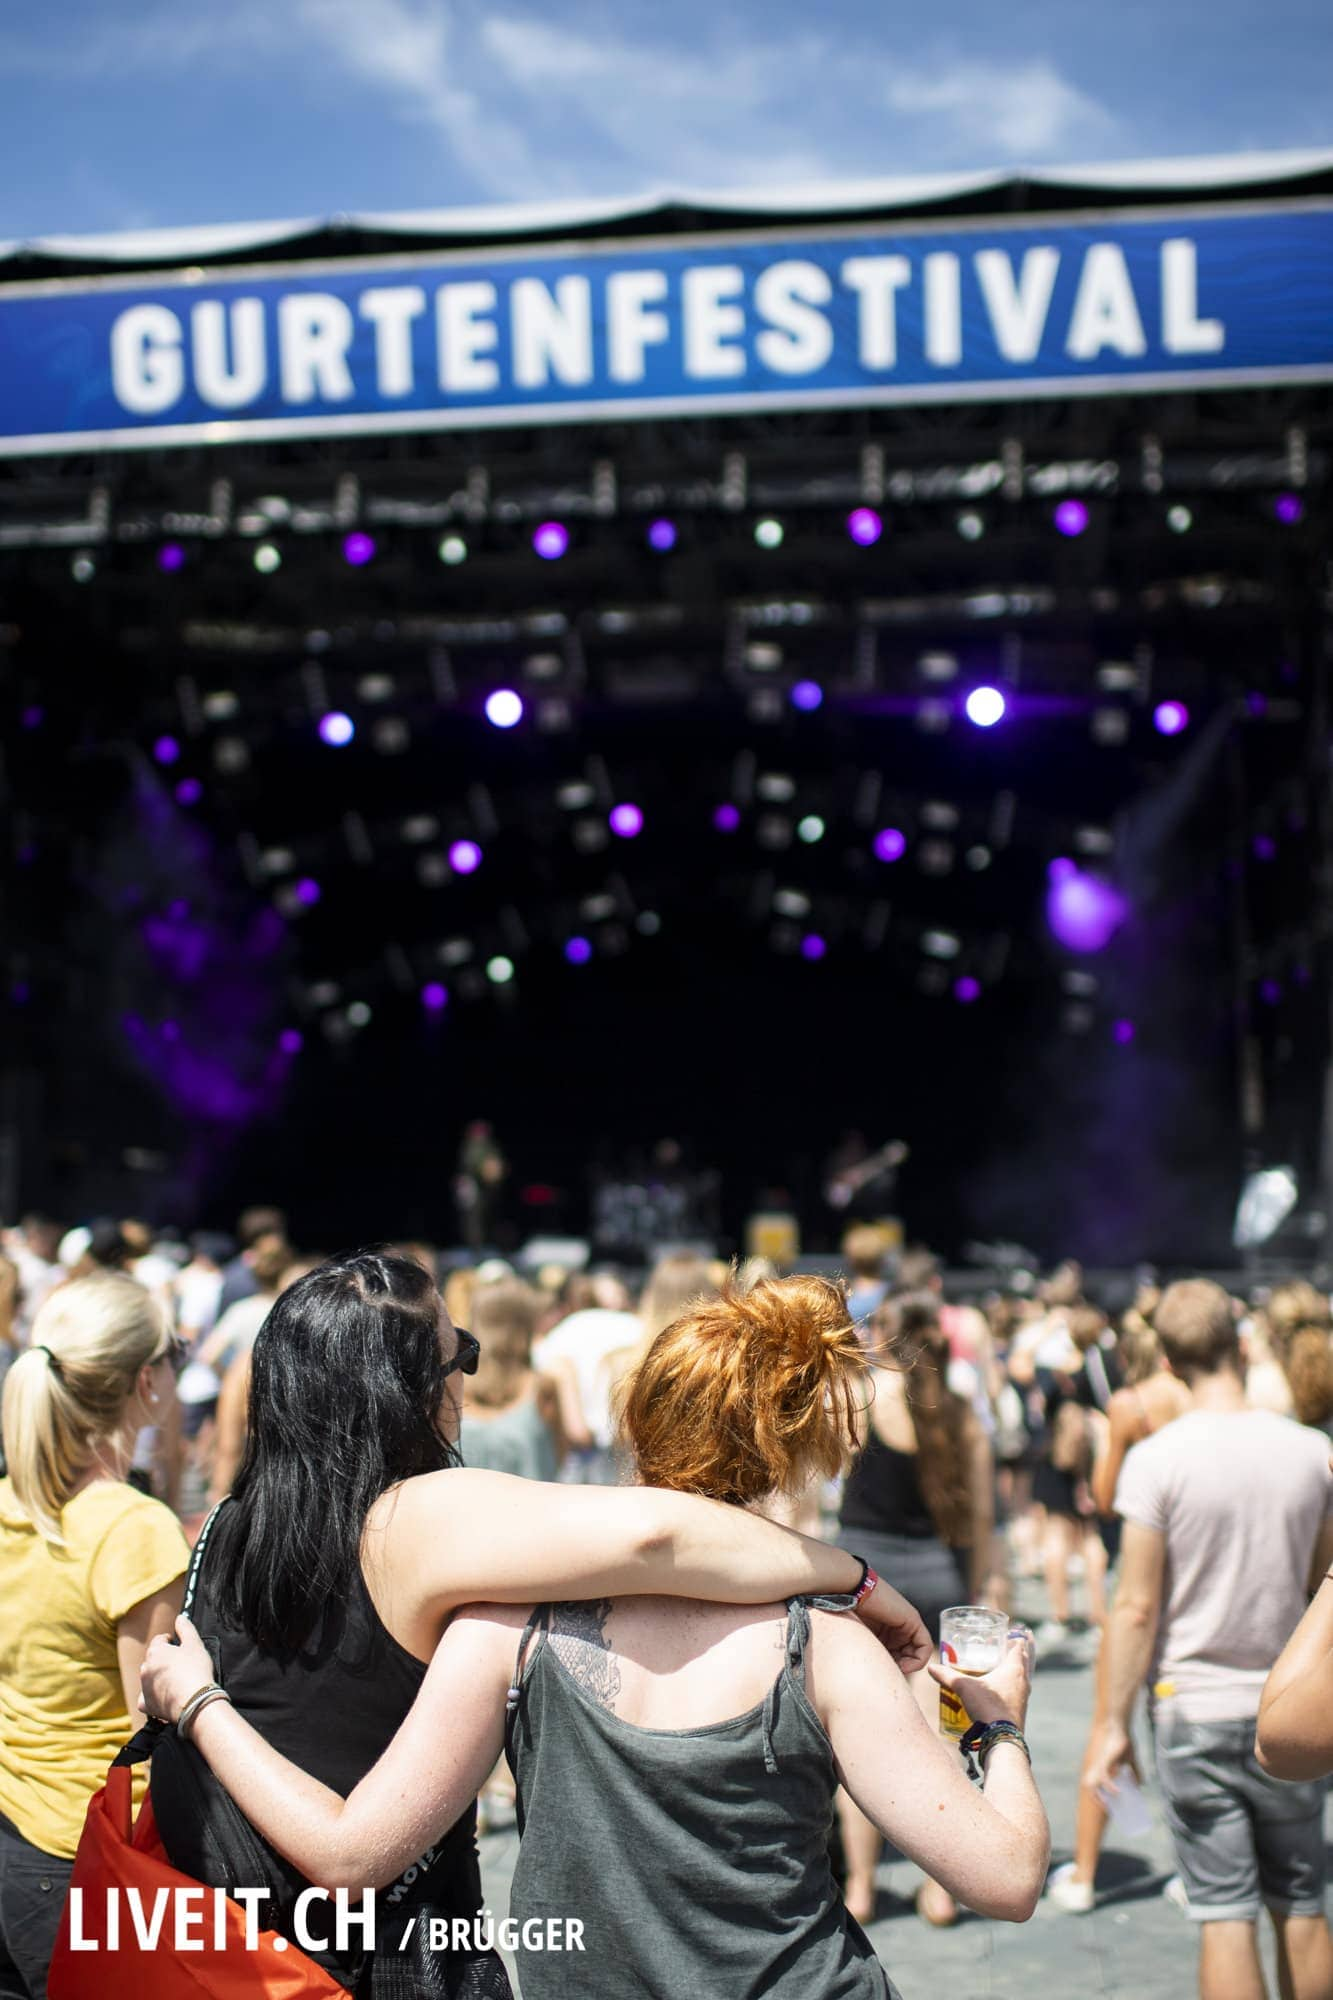 Jacob Banks Gurtenfestival 2018 in Bern. (Dominic Bruegger for Gurtenfestival)